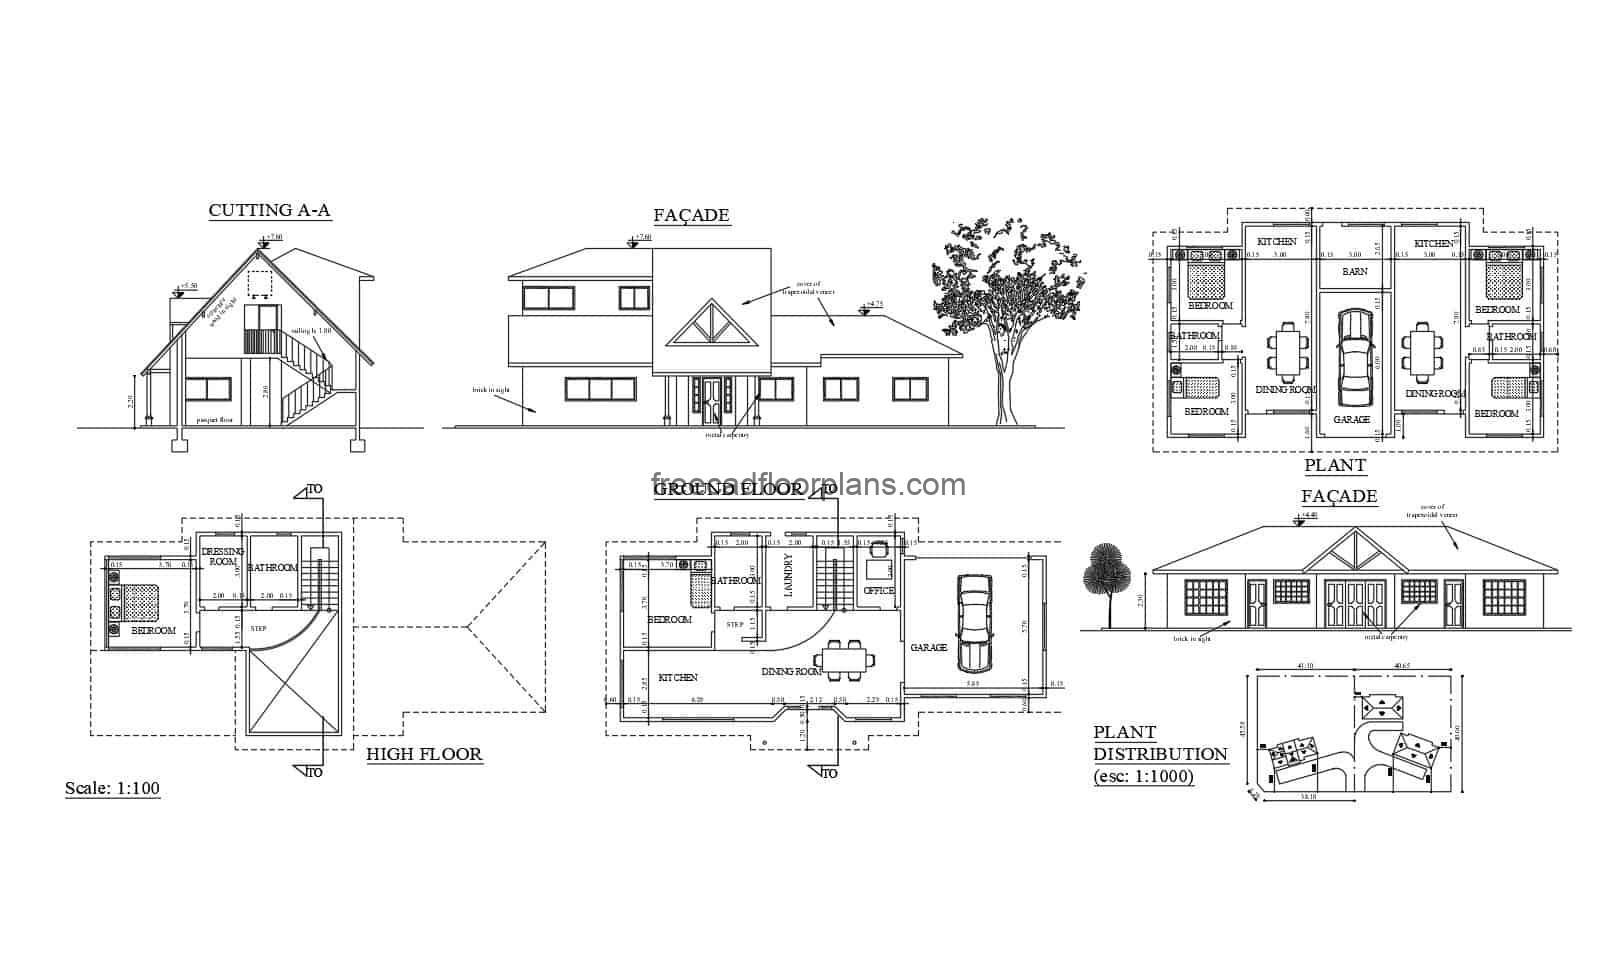 free plans to download simple one-level country house, architectural plants and facade details in autocad